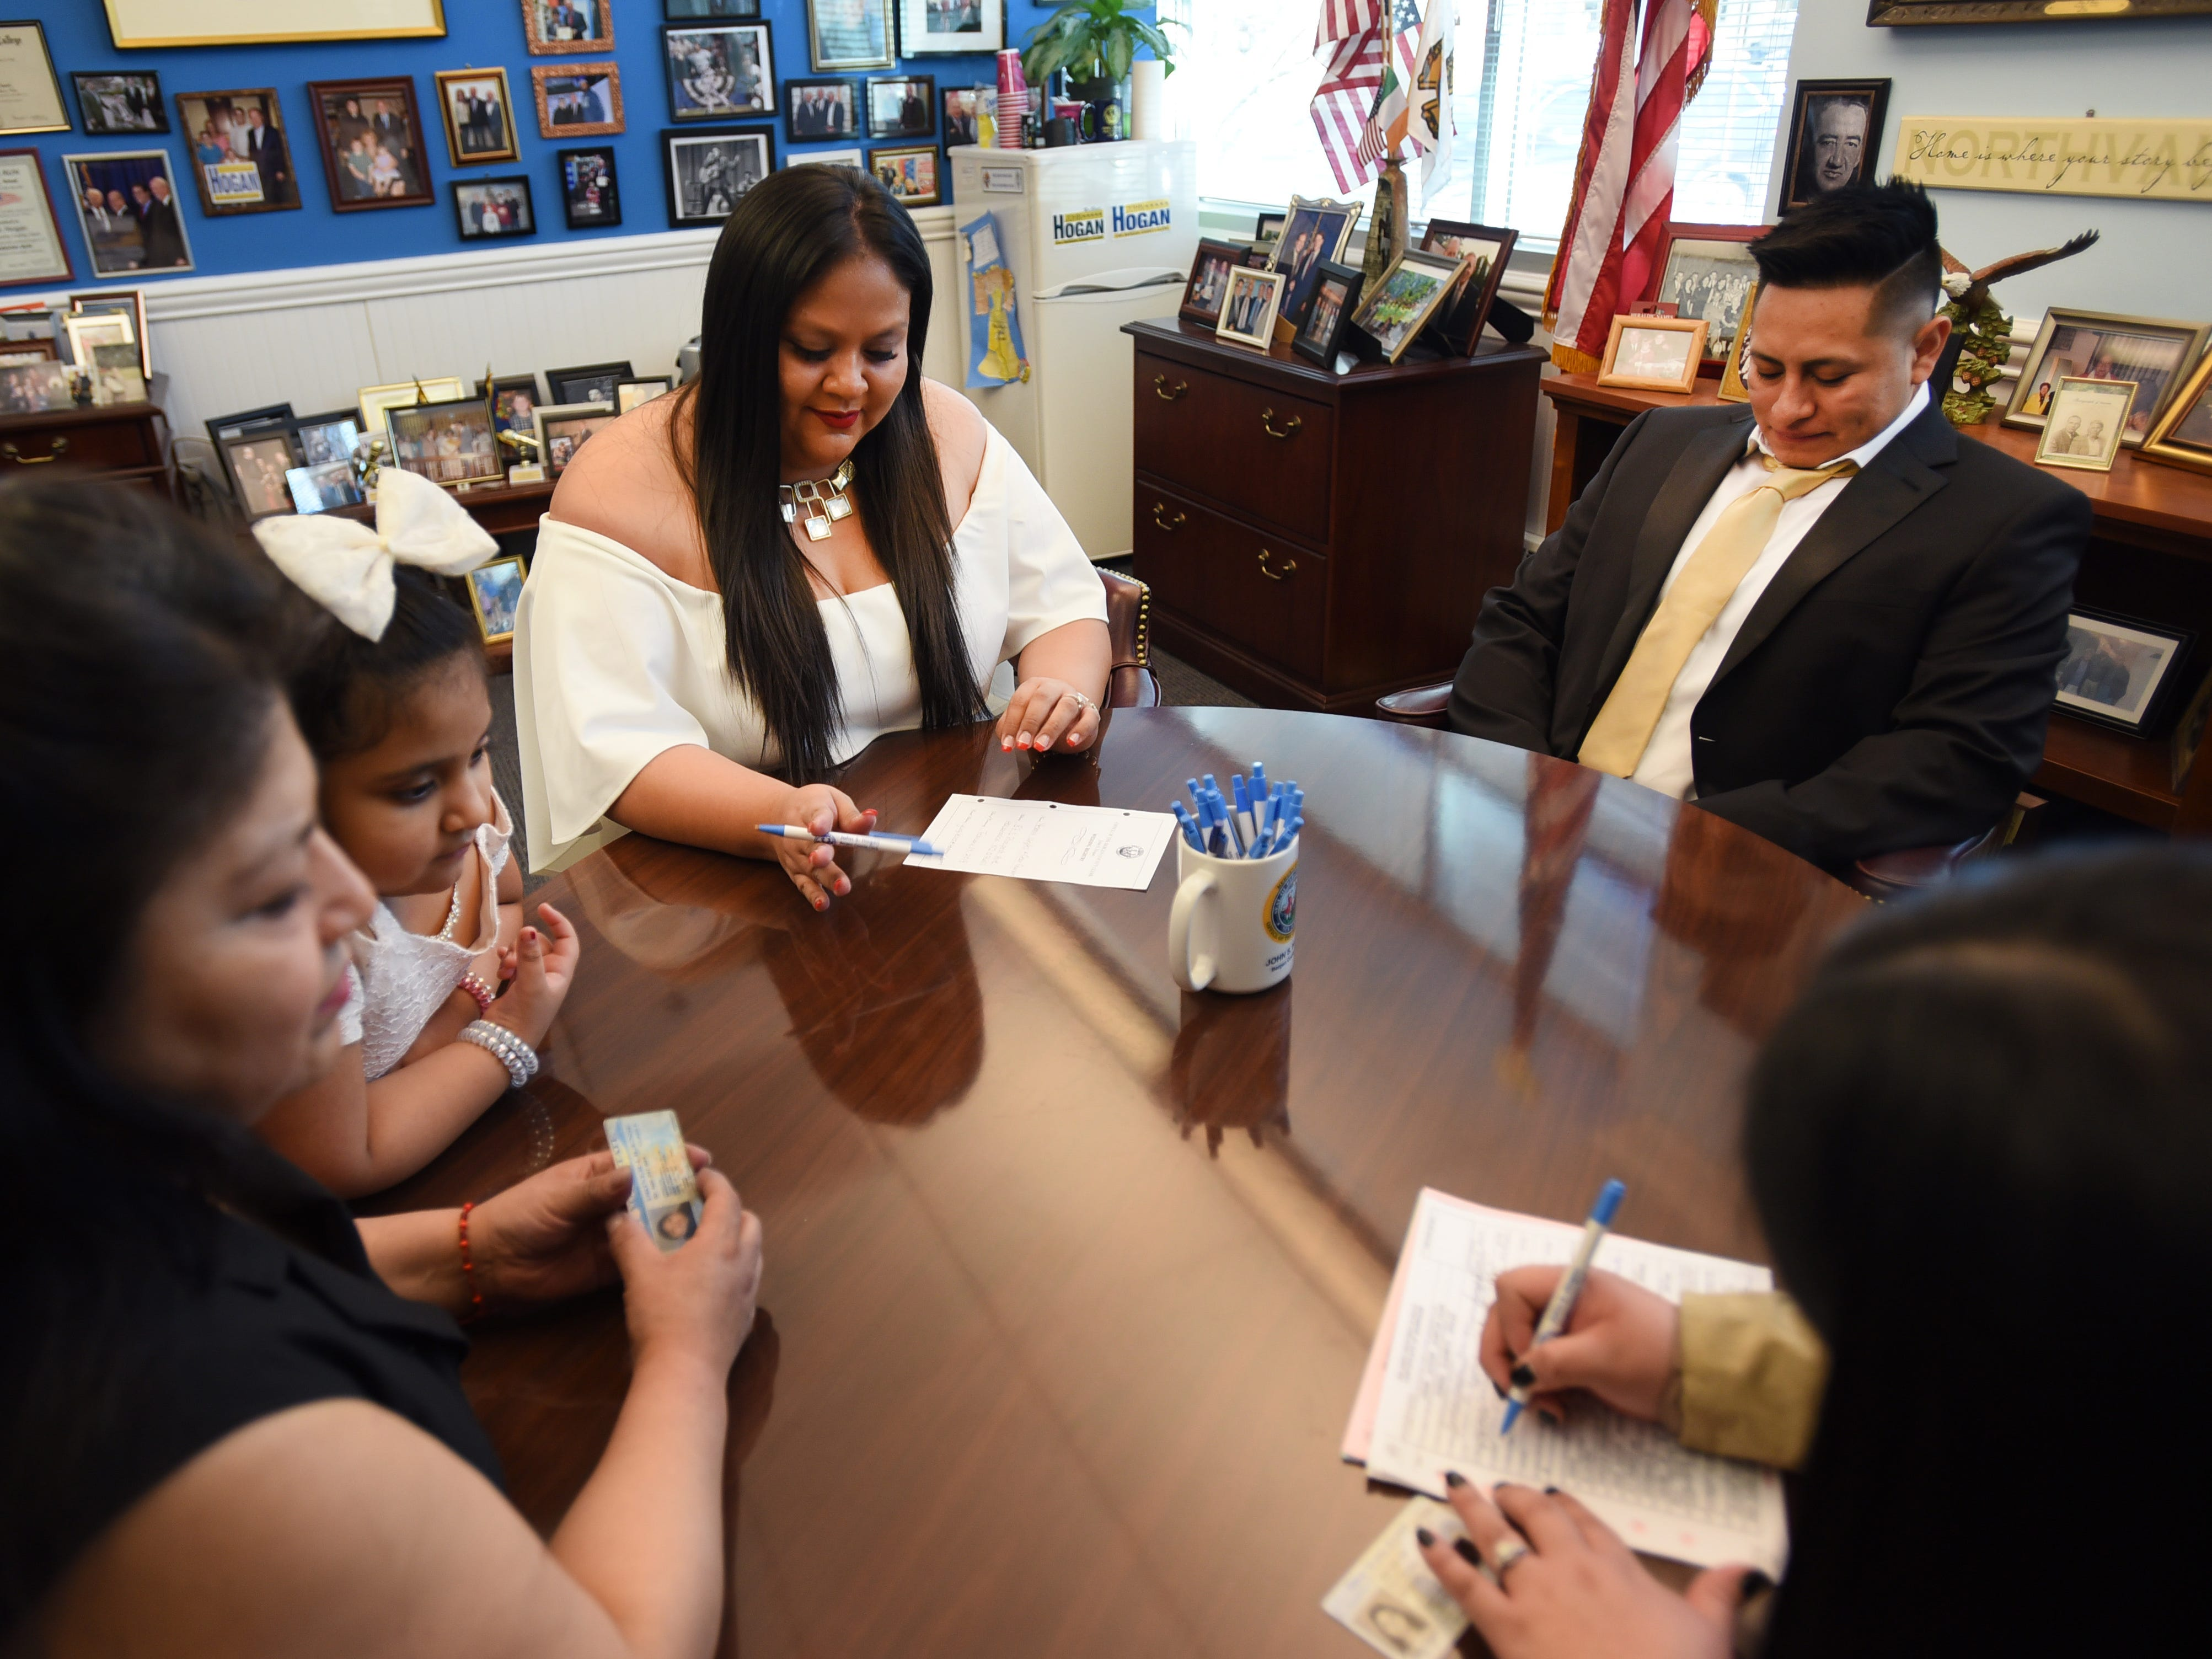 Bride and groom, Yesenia Urgiles and Cesar Guartan of Hackensack, sign for their marriage certificate prior to their wedding ceremony at Bergen County Clerk's Office, located at  Bergen County Plaza in Hackensack on 02/14/19.